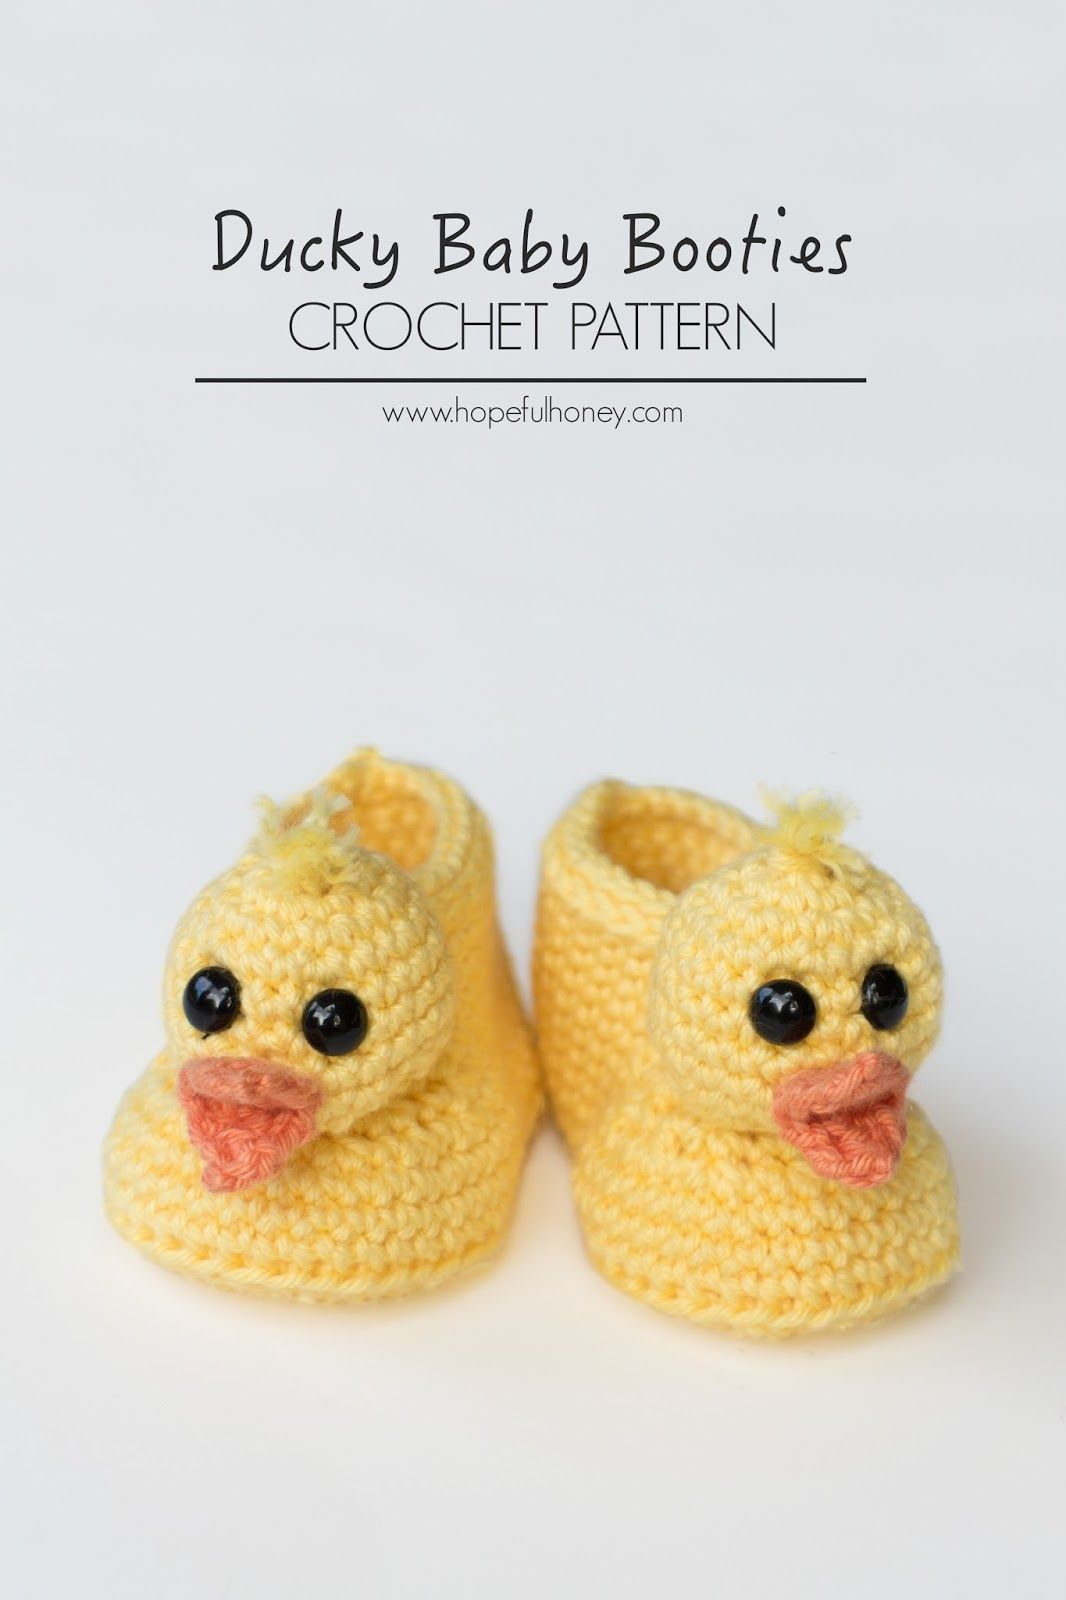 Duckling Baby Booties Crochet Pattern | crochet/knitting patterns ...